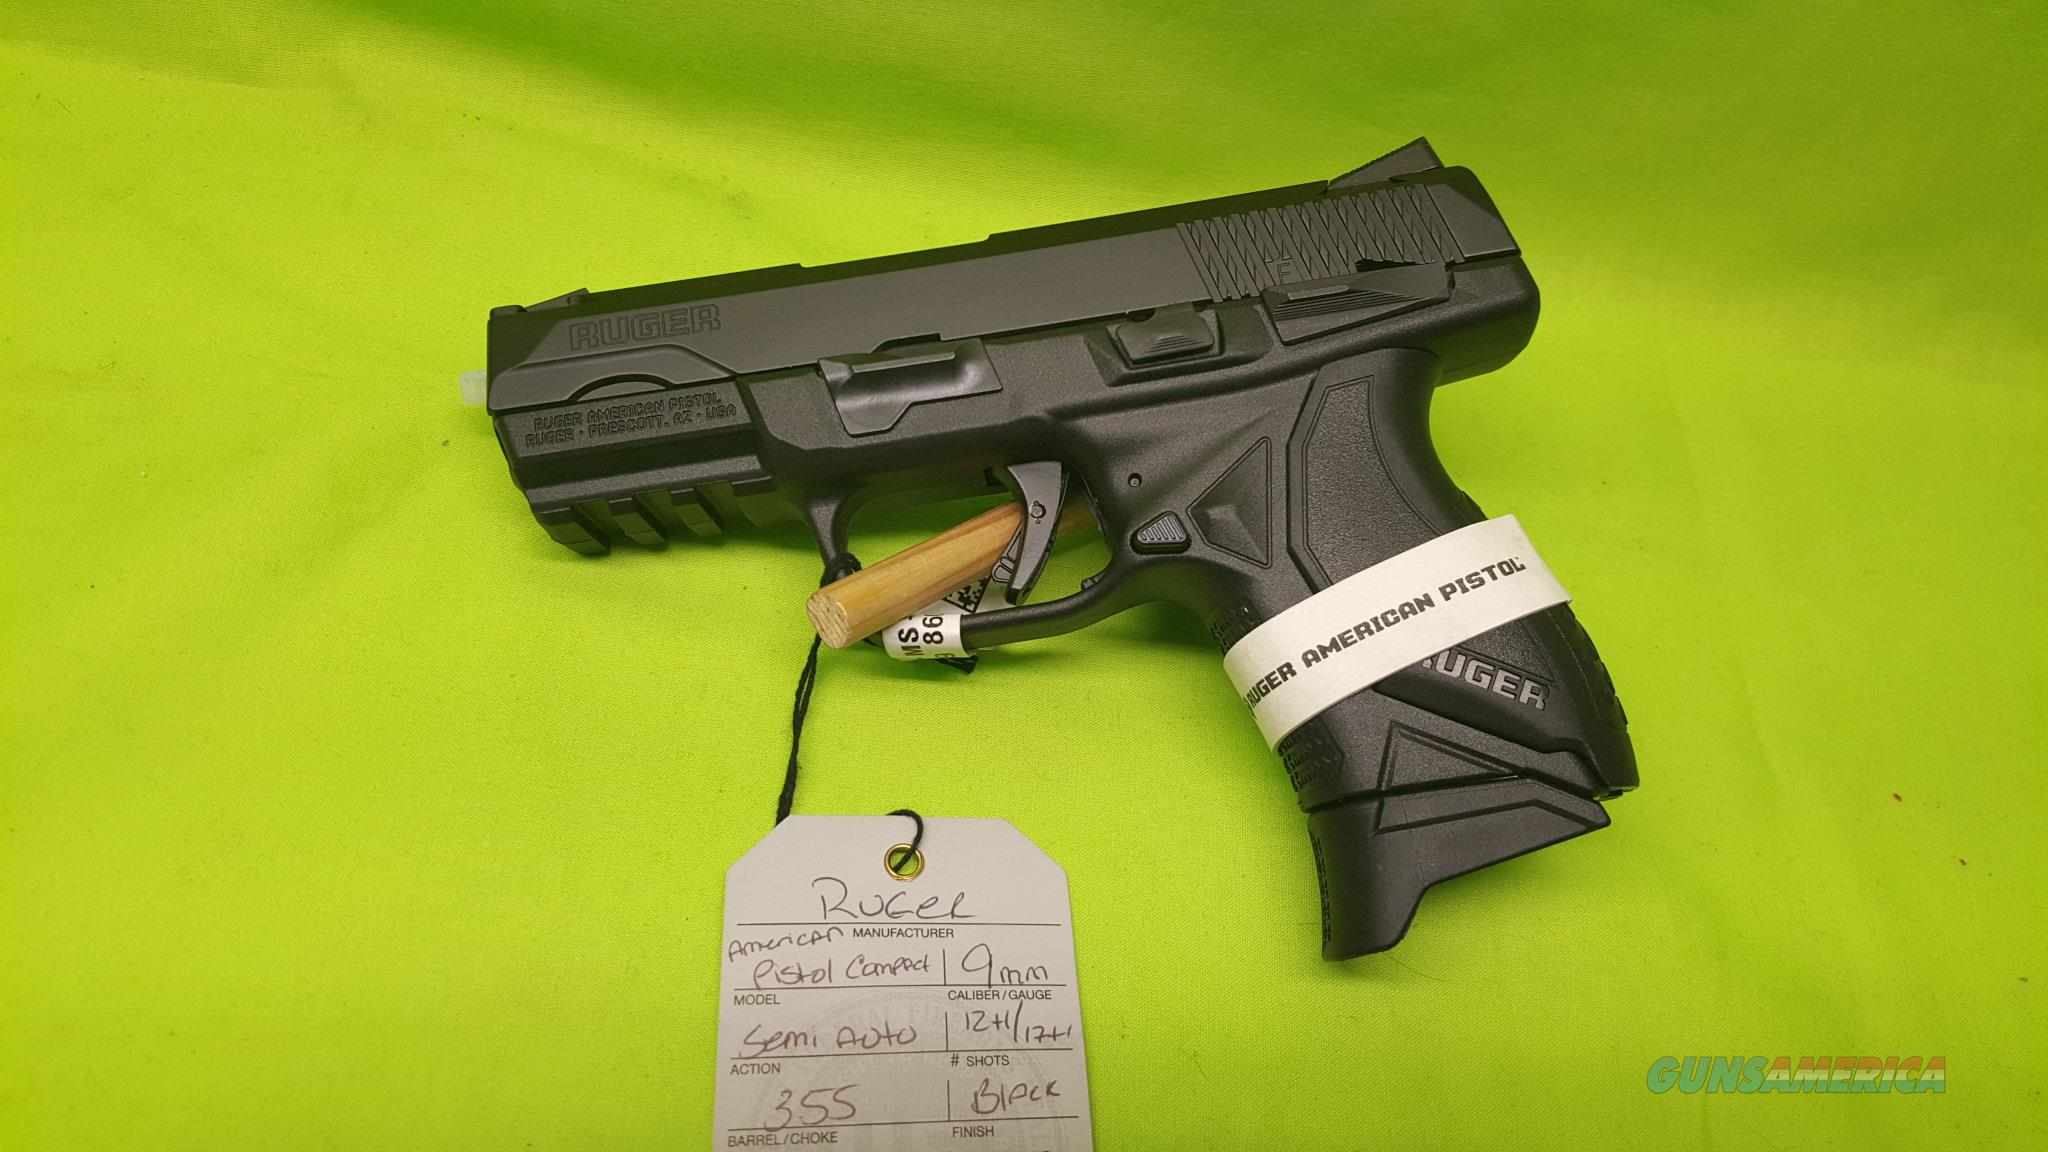 RUGER AMERICAN PISTOL COMPACT 9MM 9 MM 12/17 8639  Guns > Pistols > Ruger Semi-Auto Pistols > American Pistol